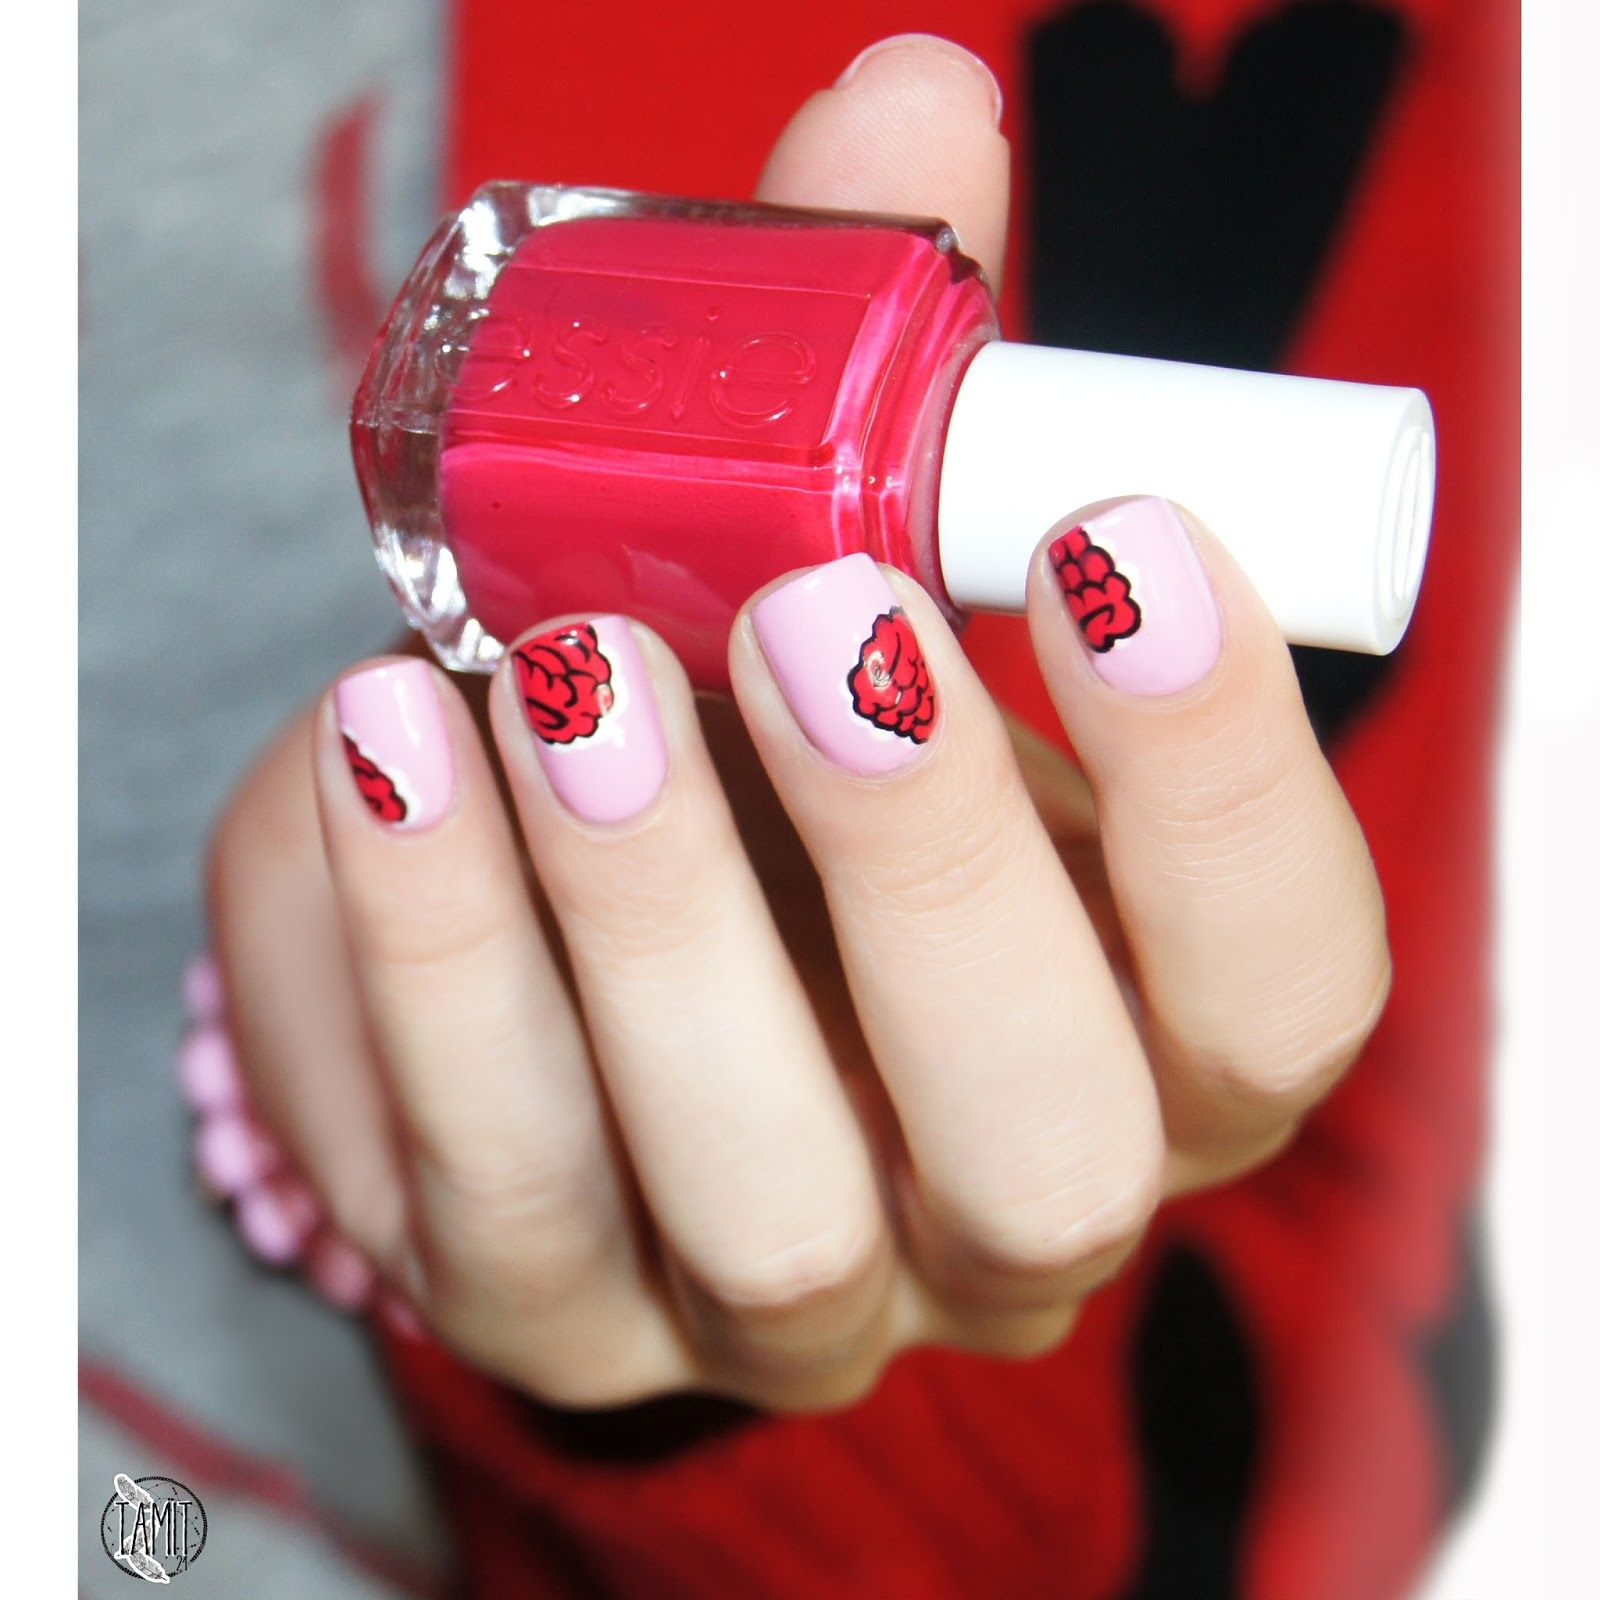 Raspberry nails: tutorial. (With images) | Raspberry nails ...